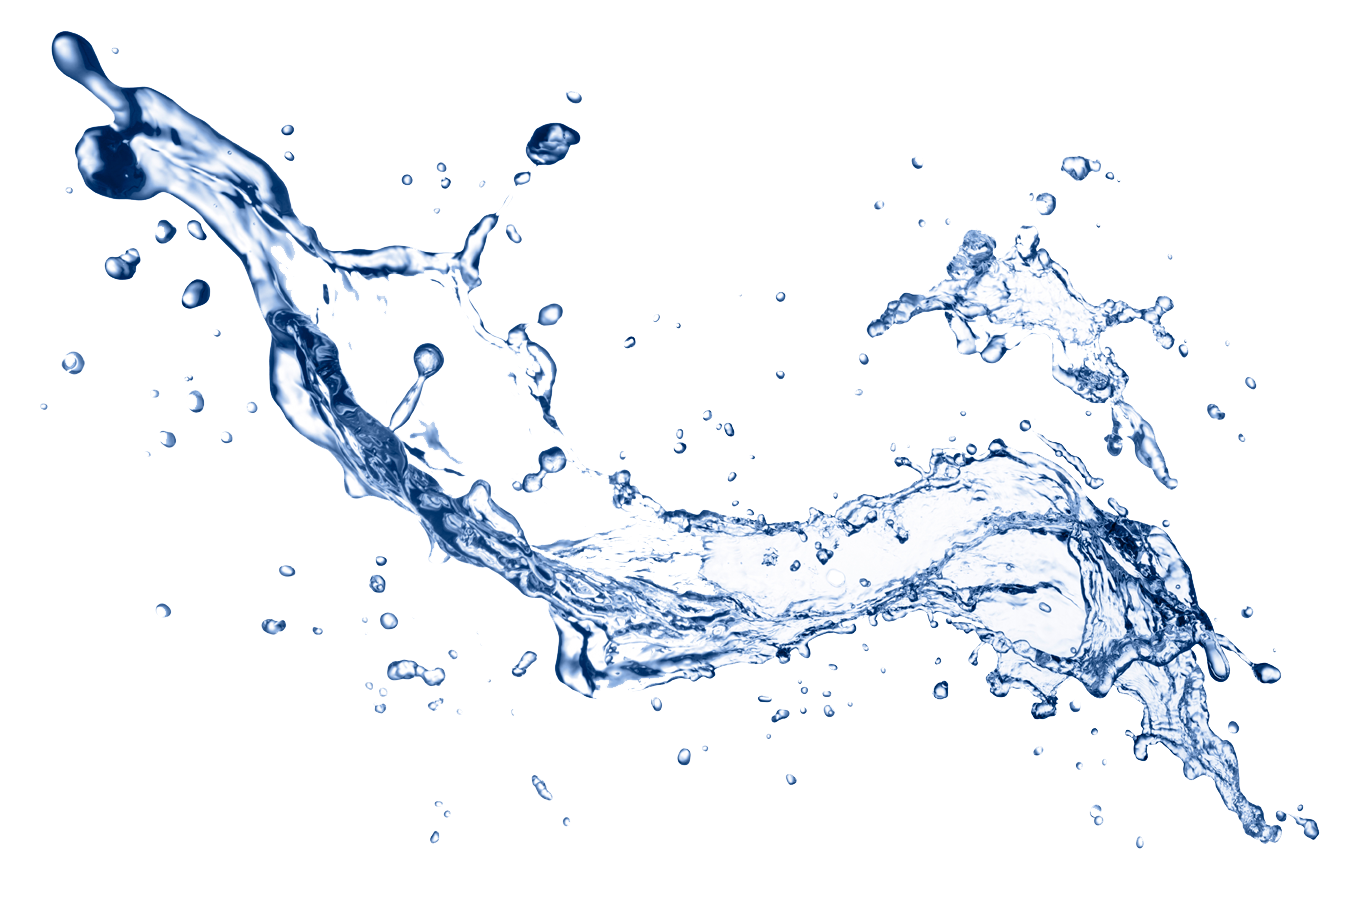 Water png image. Transparent images all